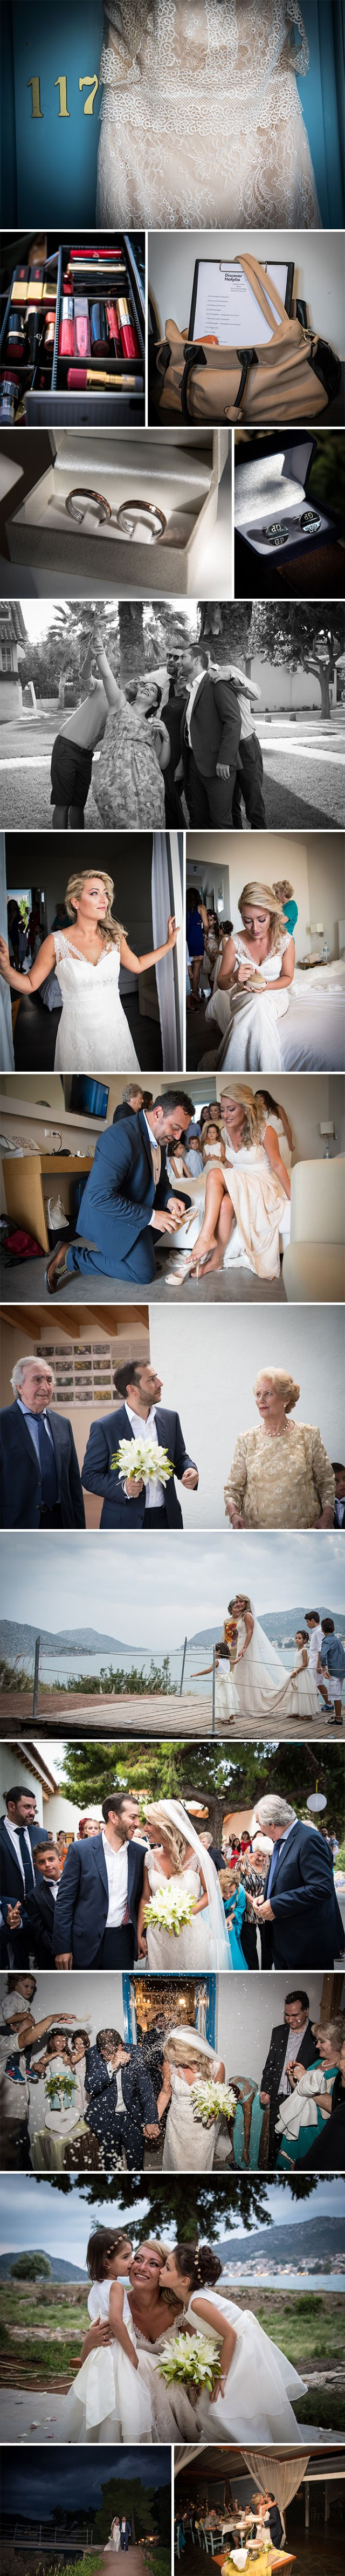 eva-giorgosweddingstory